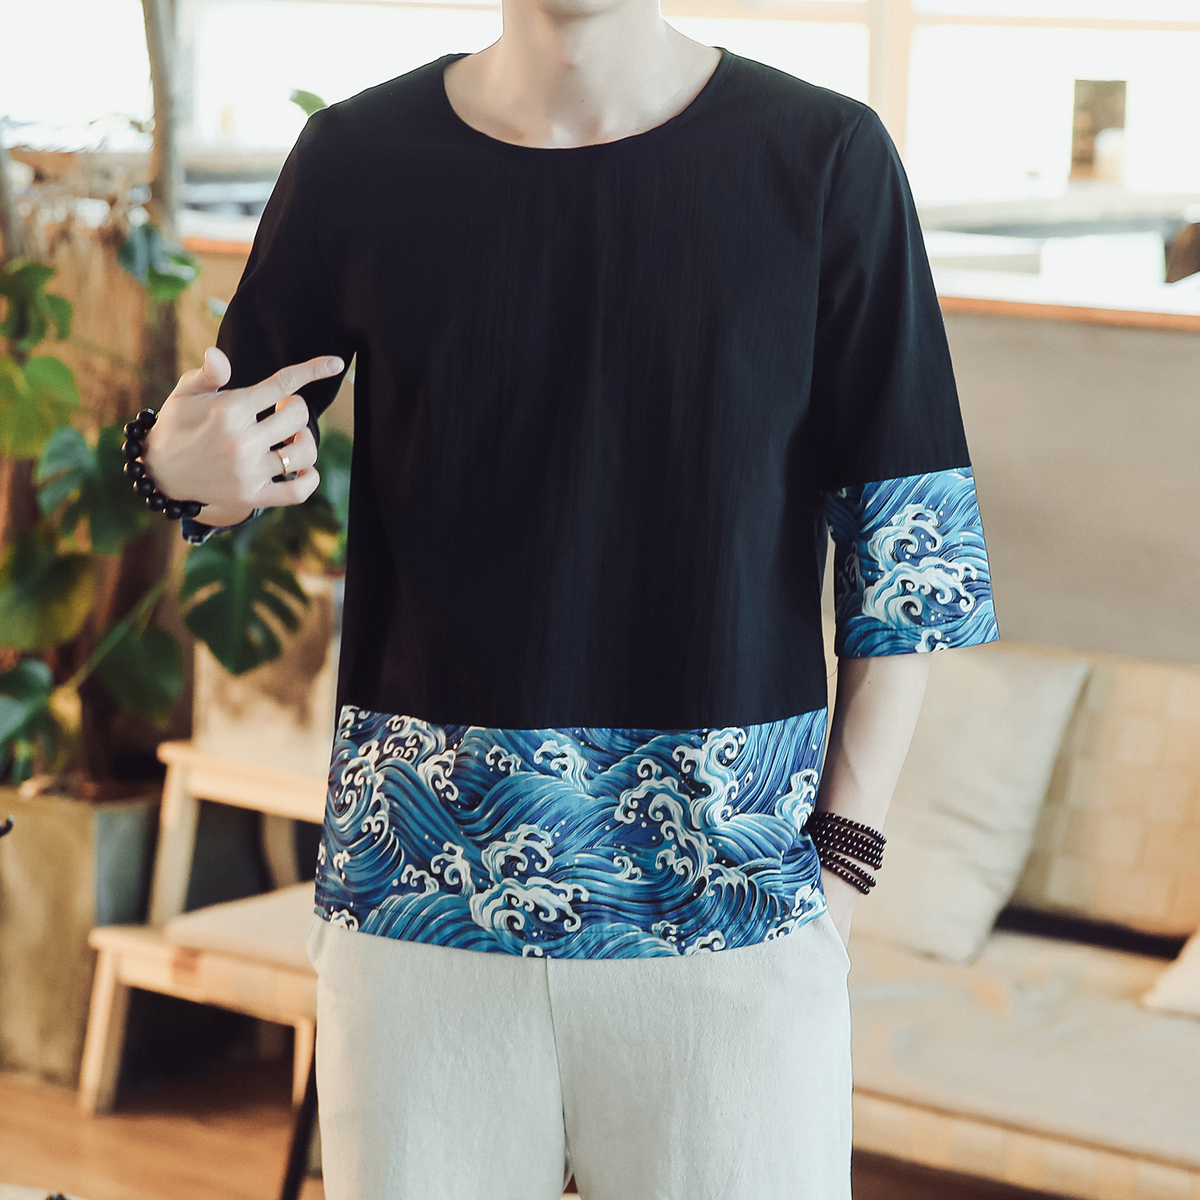 Designer Cotton Linen T Shirts Men Patchwork Loose Japanese Style Summer Top Short Sleeve Round Neck Camisetas Hombre 5xl Black